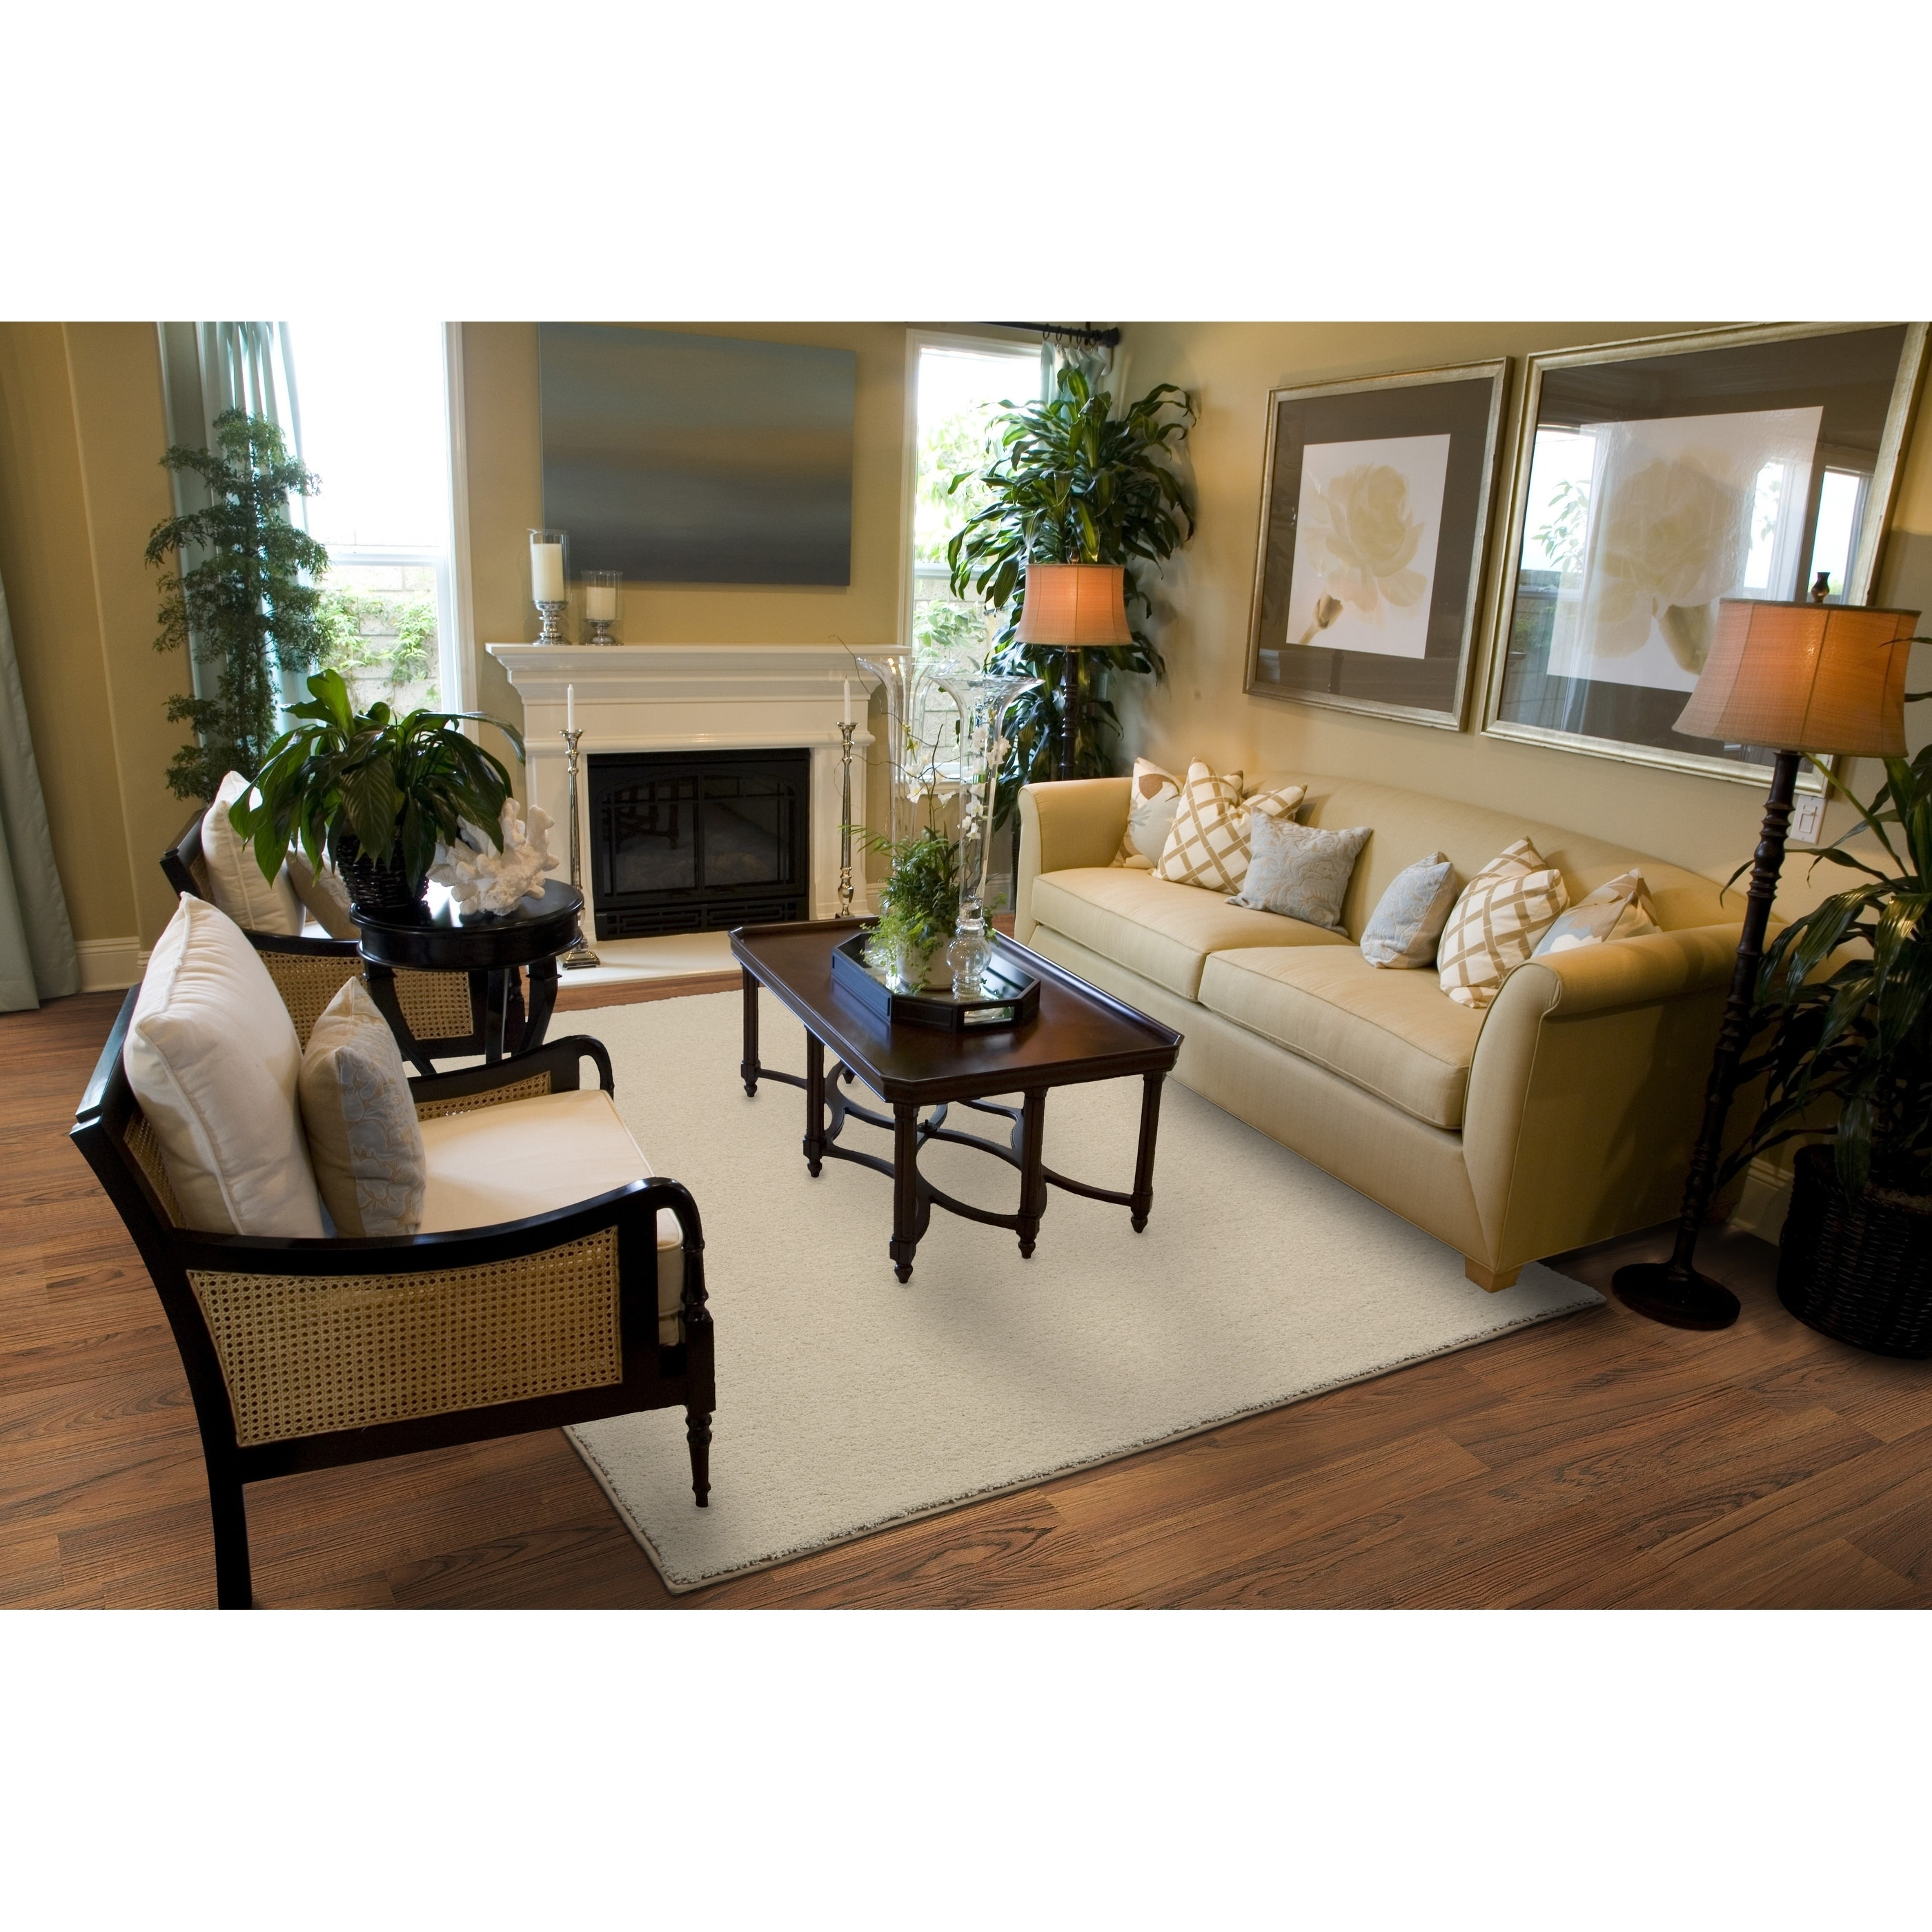 Remnant Earth Tone Living Room Area Rug